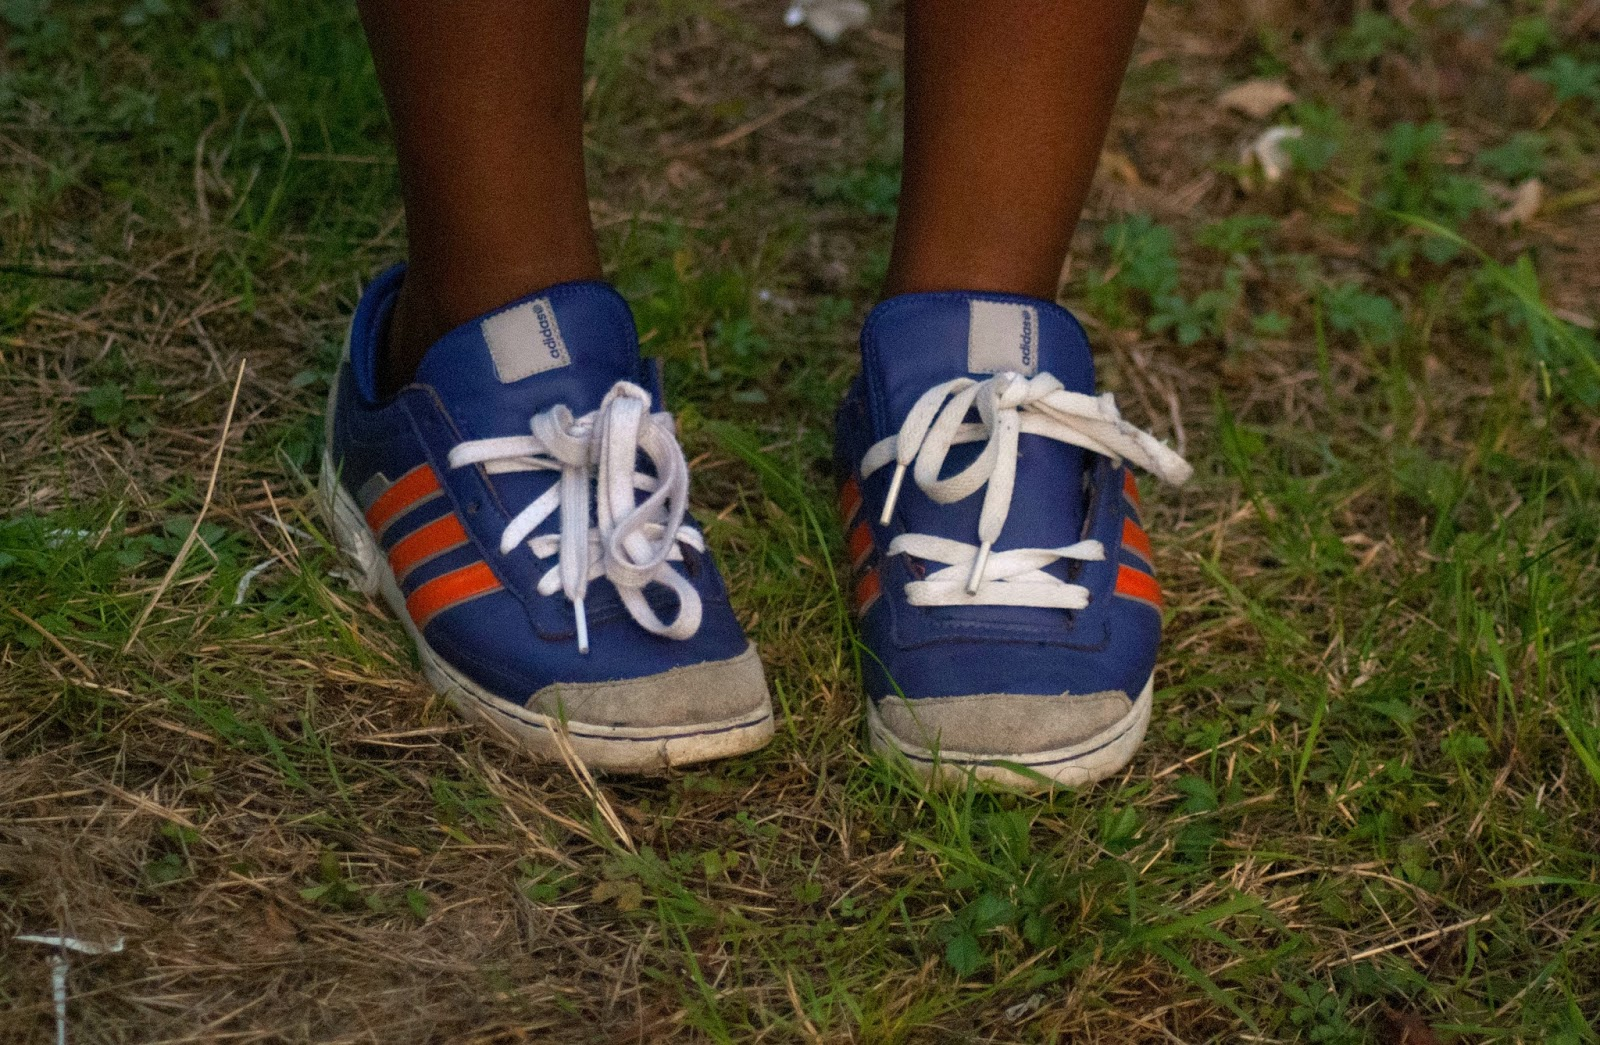 Adidas Orange and Purple Trainers - 100 Ways to 30